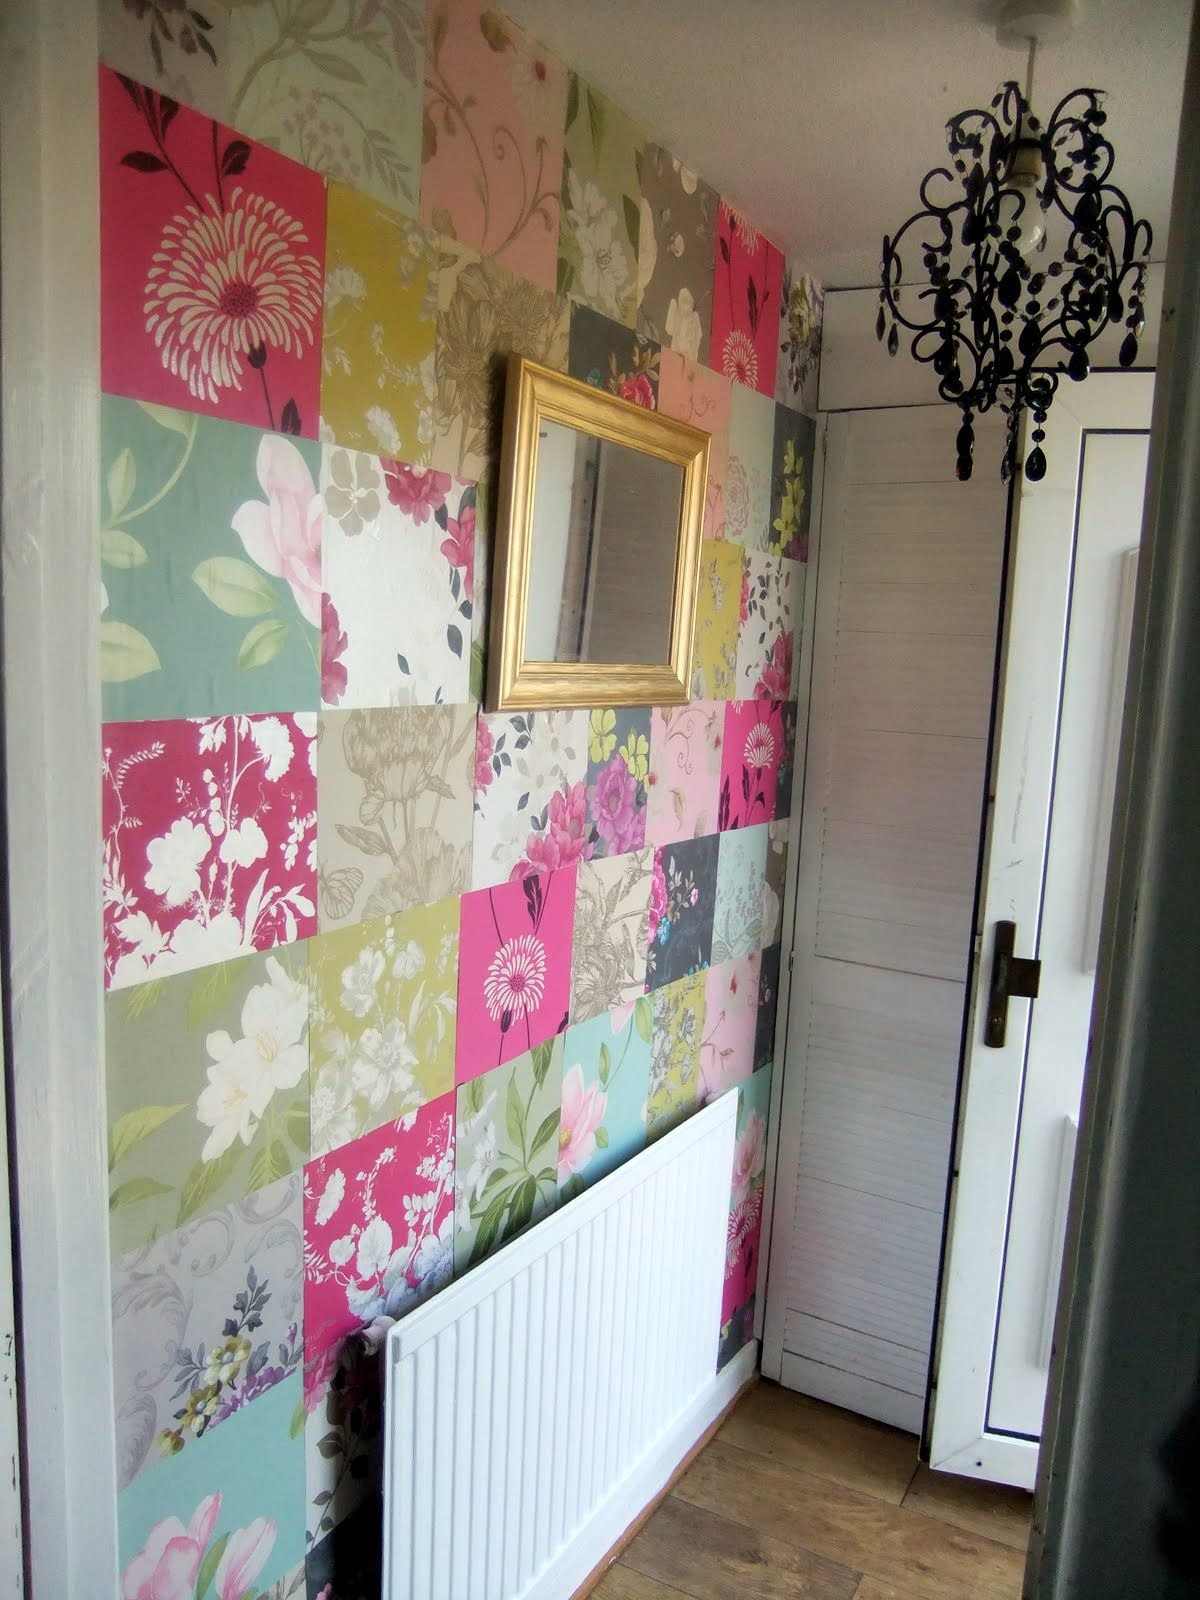 Wallpaper Patchwork Maybe Cute For One Of The Walls In The